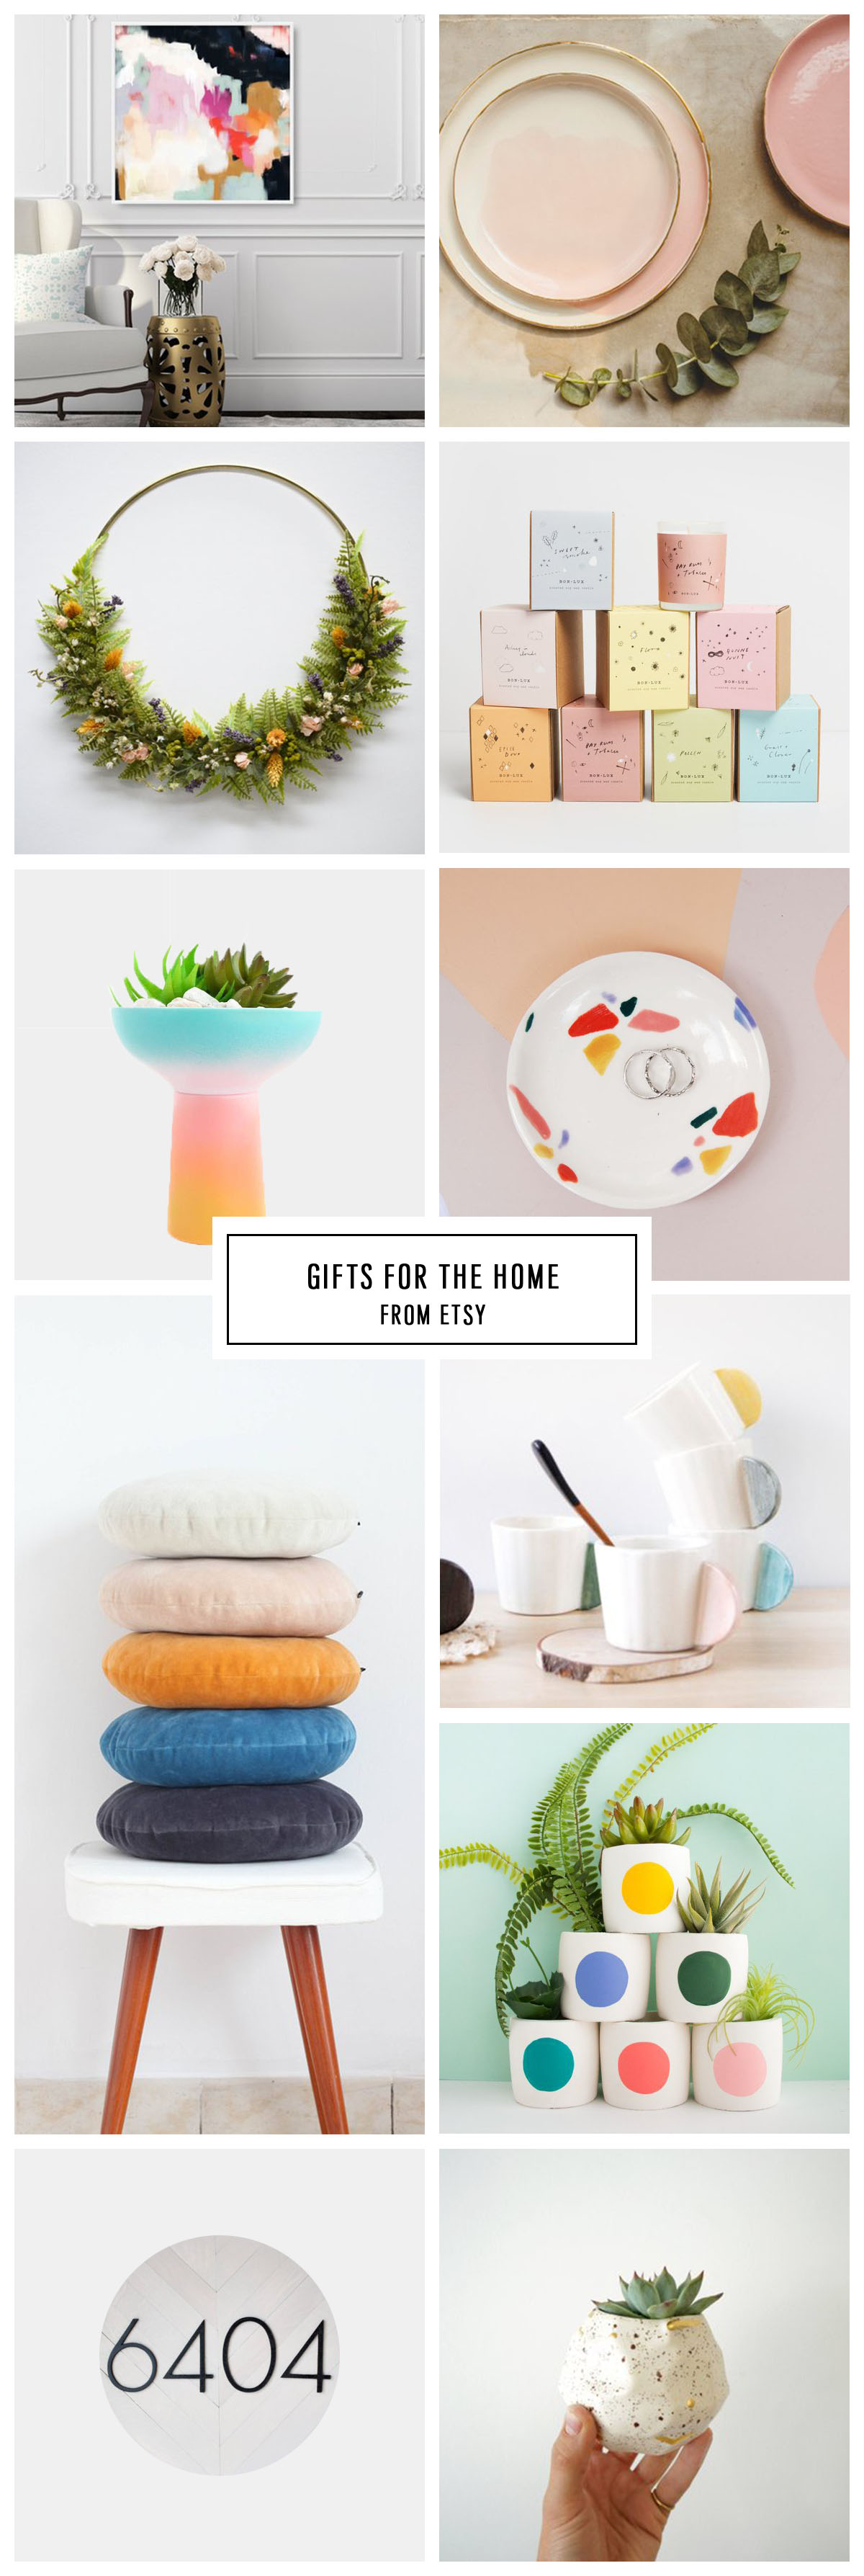 COMPLETE ETSY GIFT GUIDE FOR THE HOME UNDER $75 by Houston lifestyle blogger Ashley Rose of Sugar and Cloth -- #giftguide #christmas #entertaining #holidaygifts #presents